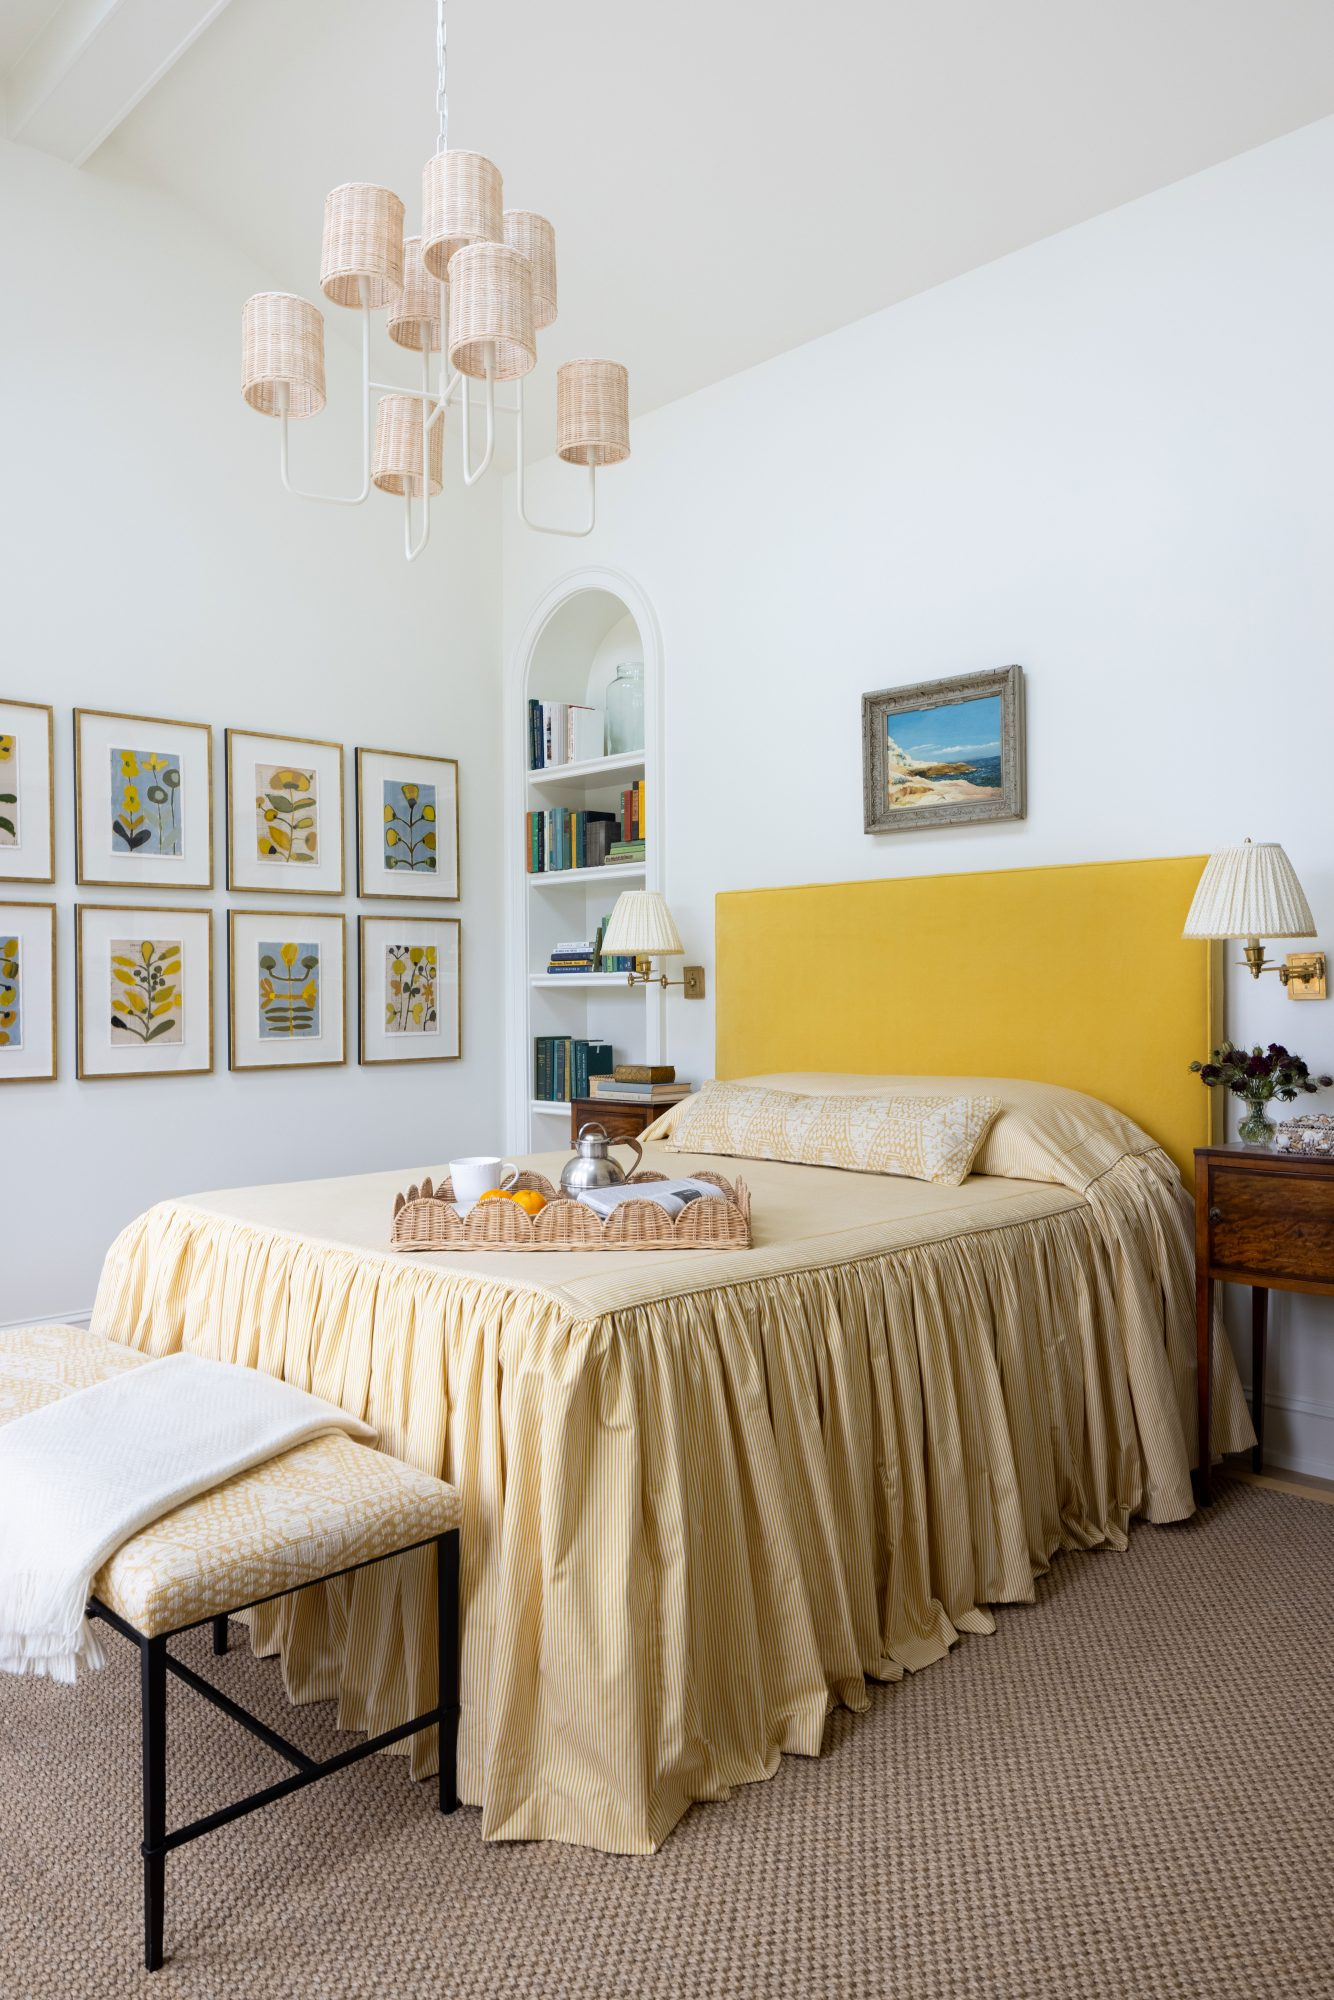 2021 Idea House Guest Bedroom in Yellow